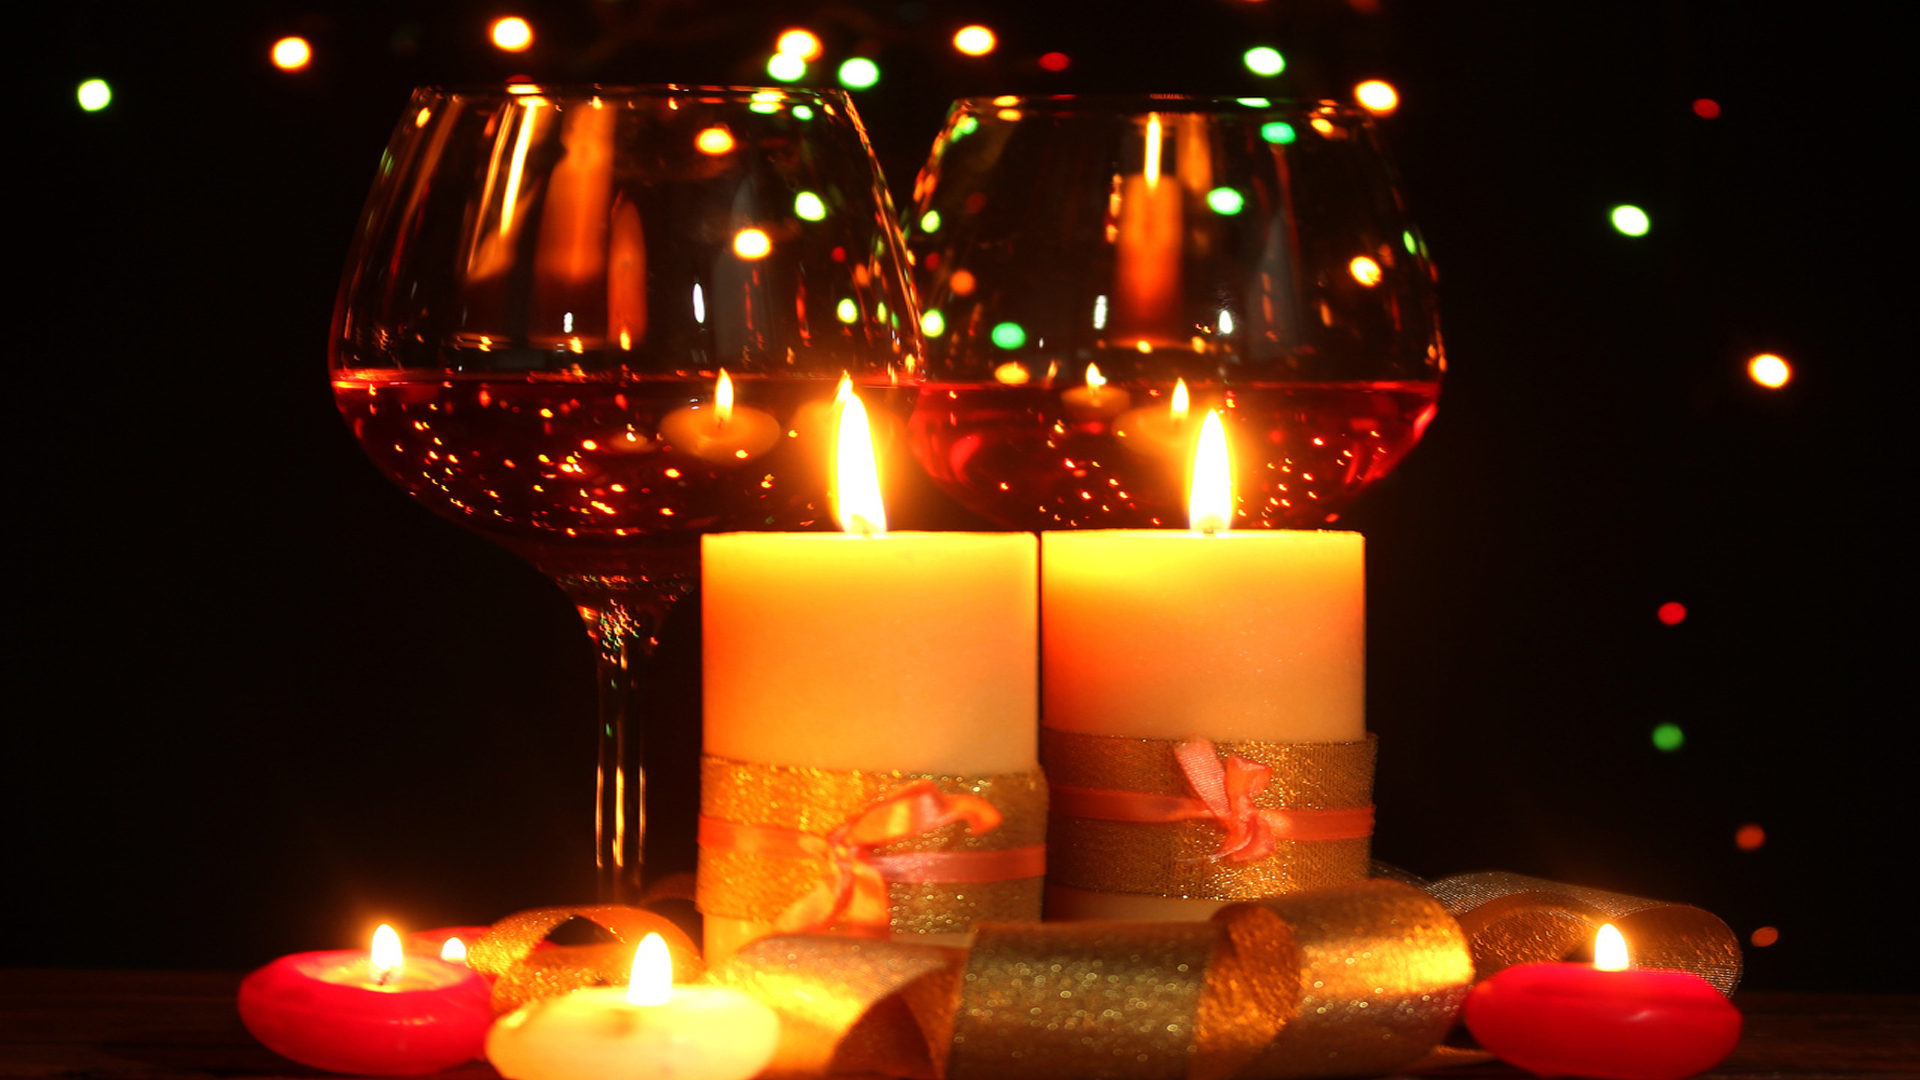 Valentine Wallpaper Iphone X Glasses Wine Light Candle 0876 Wallpapers13 Com